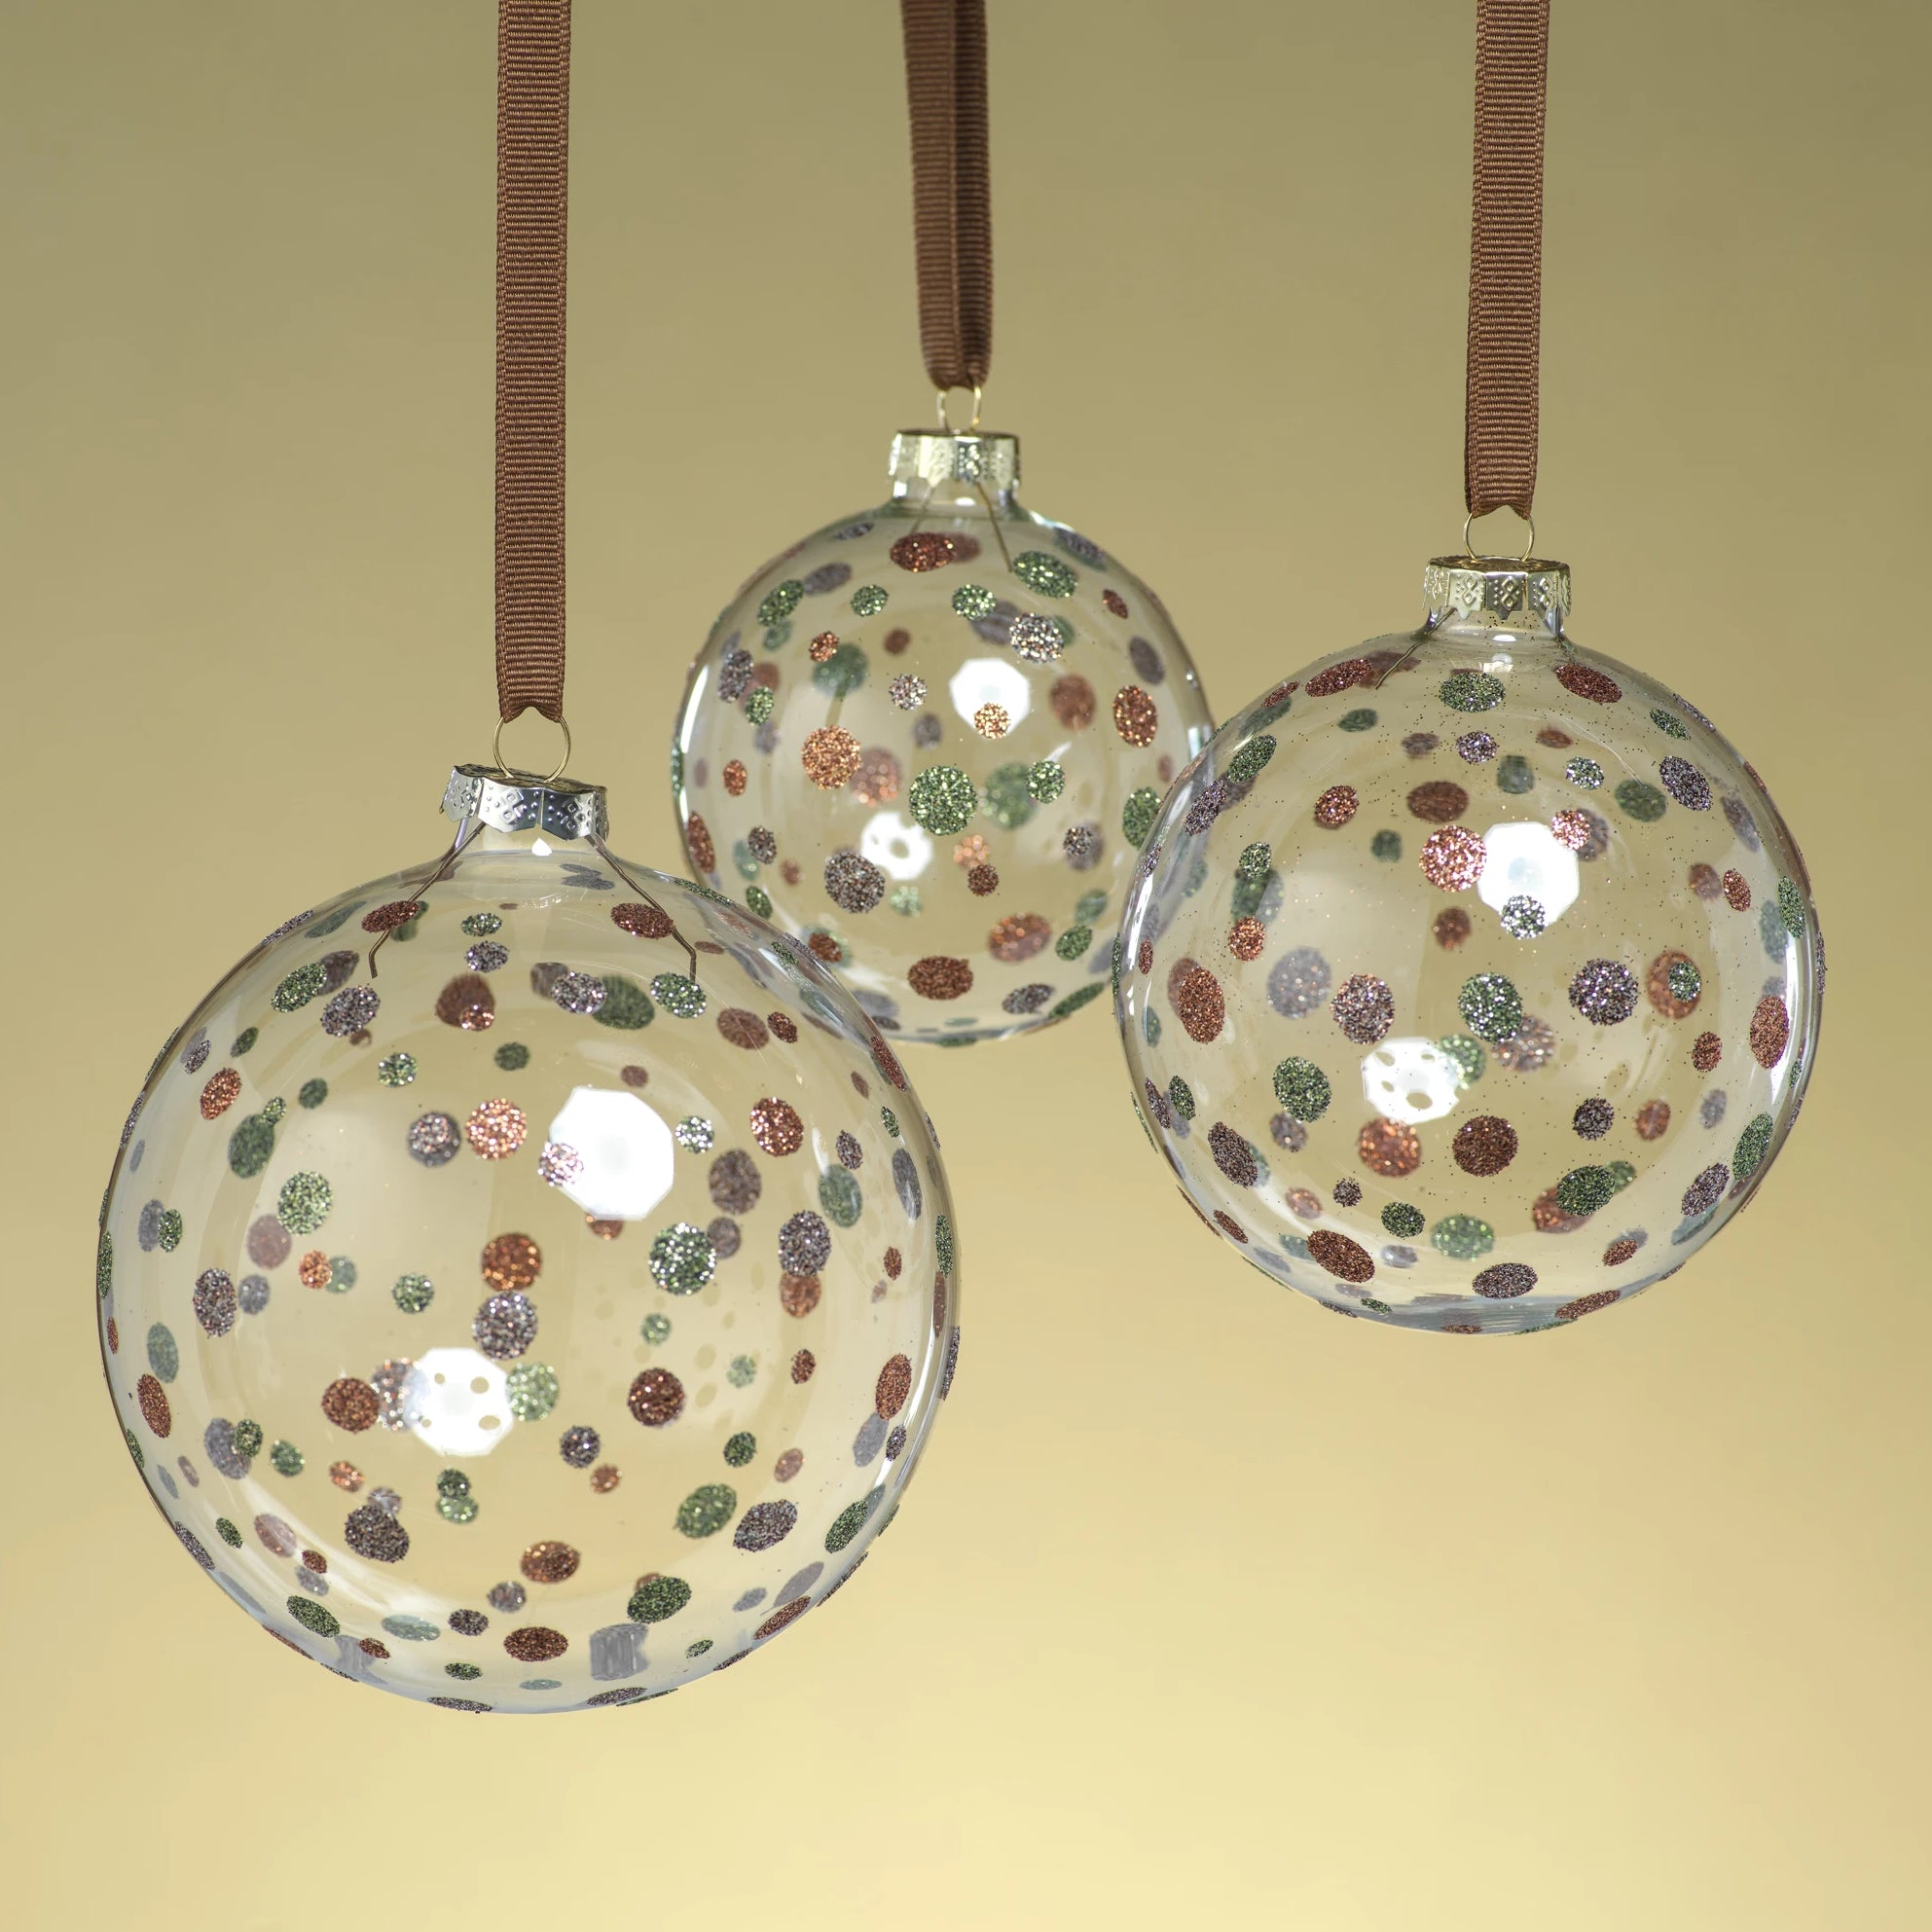 Clear Ball Ornament w/Glitter Dots - Green - CARLYLE AVENUE